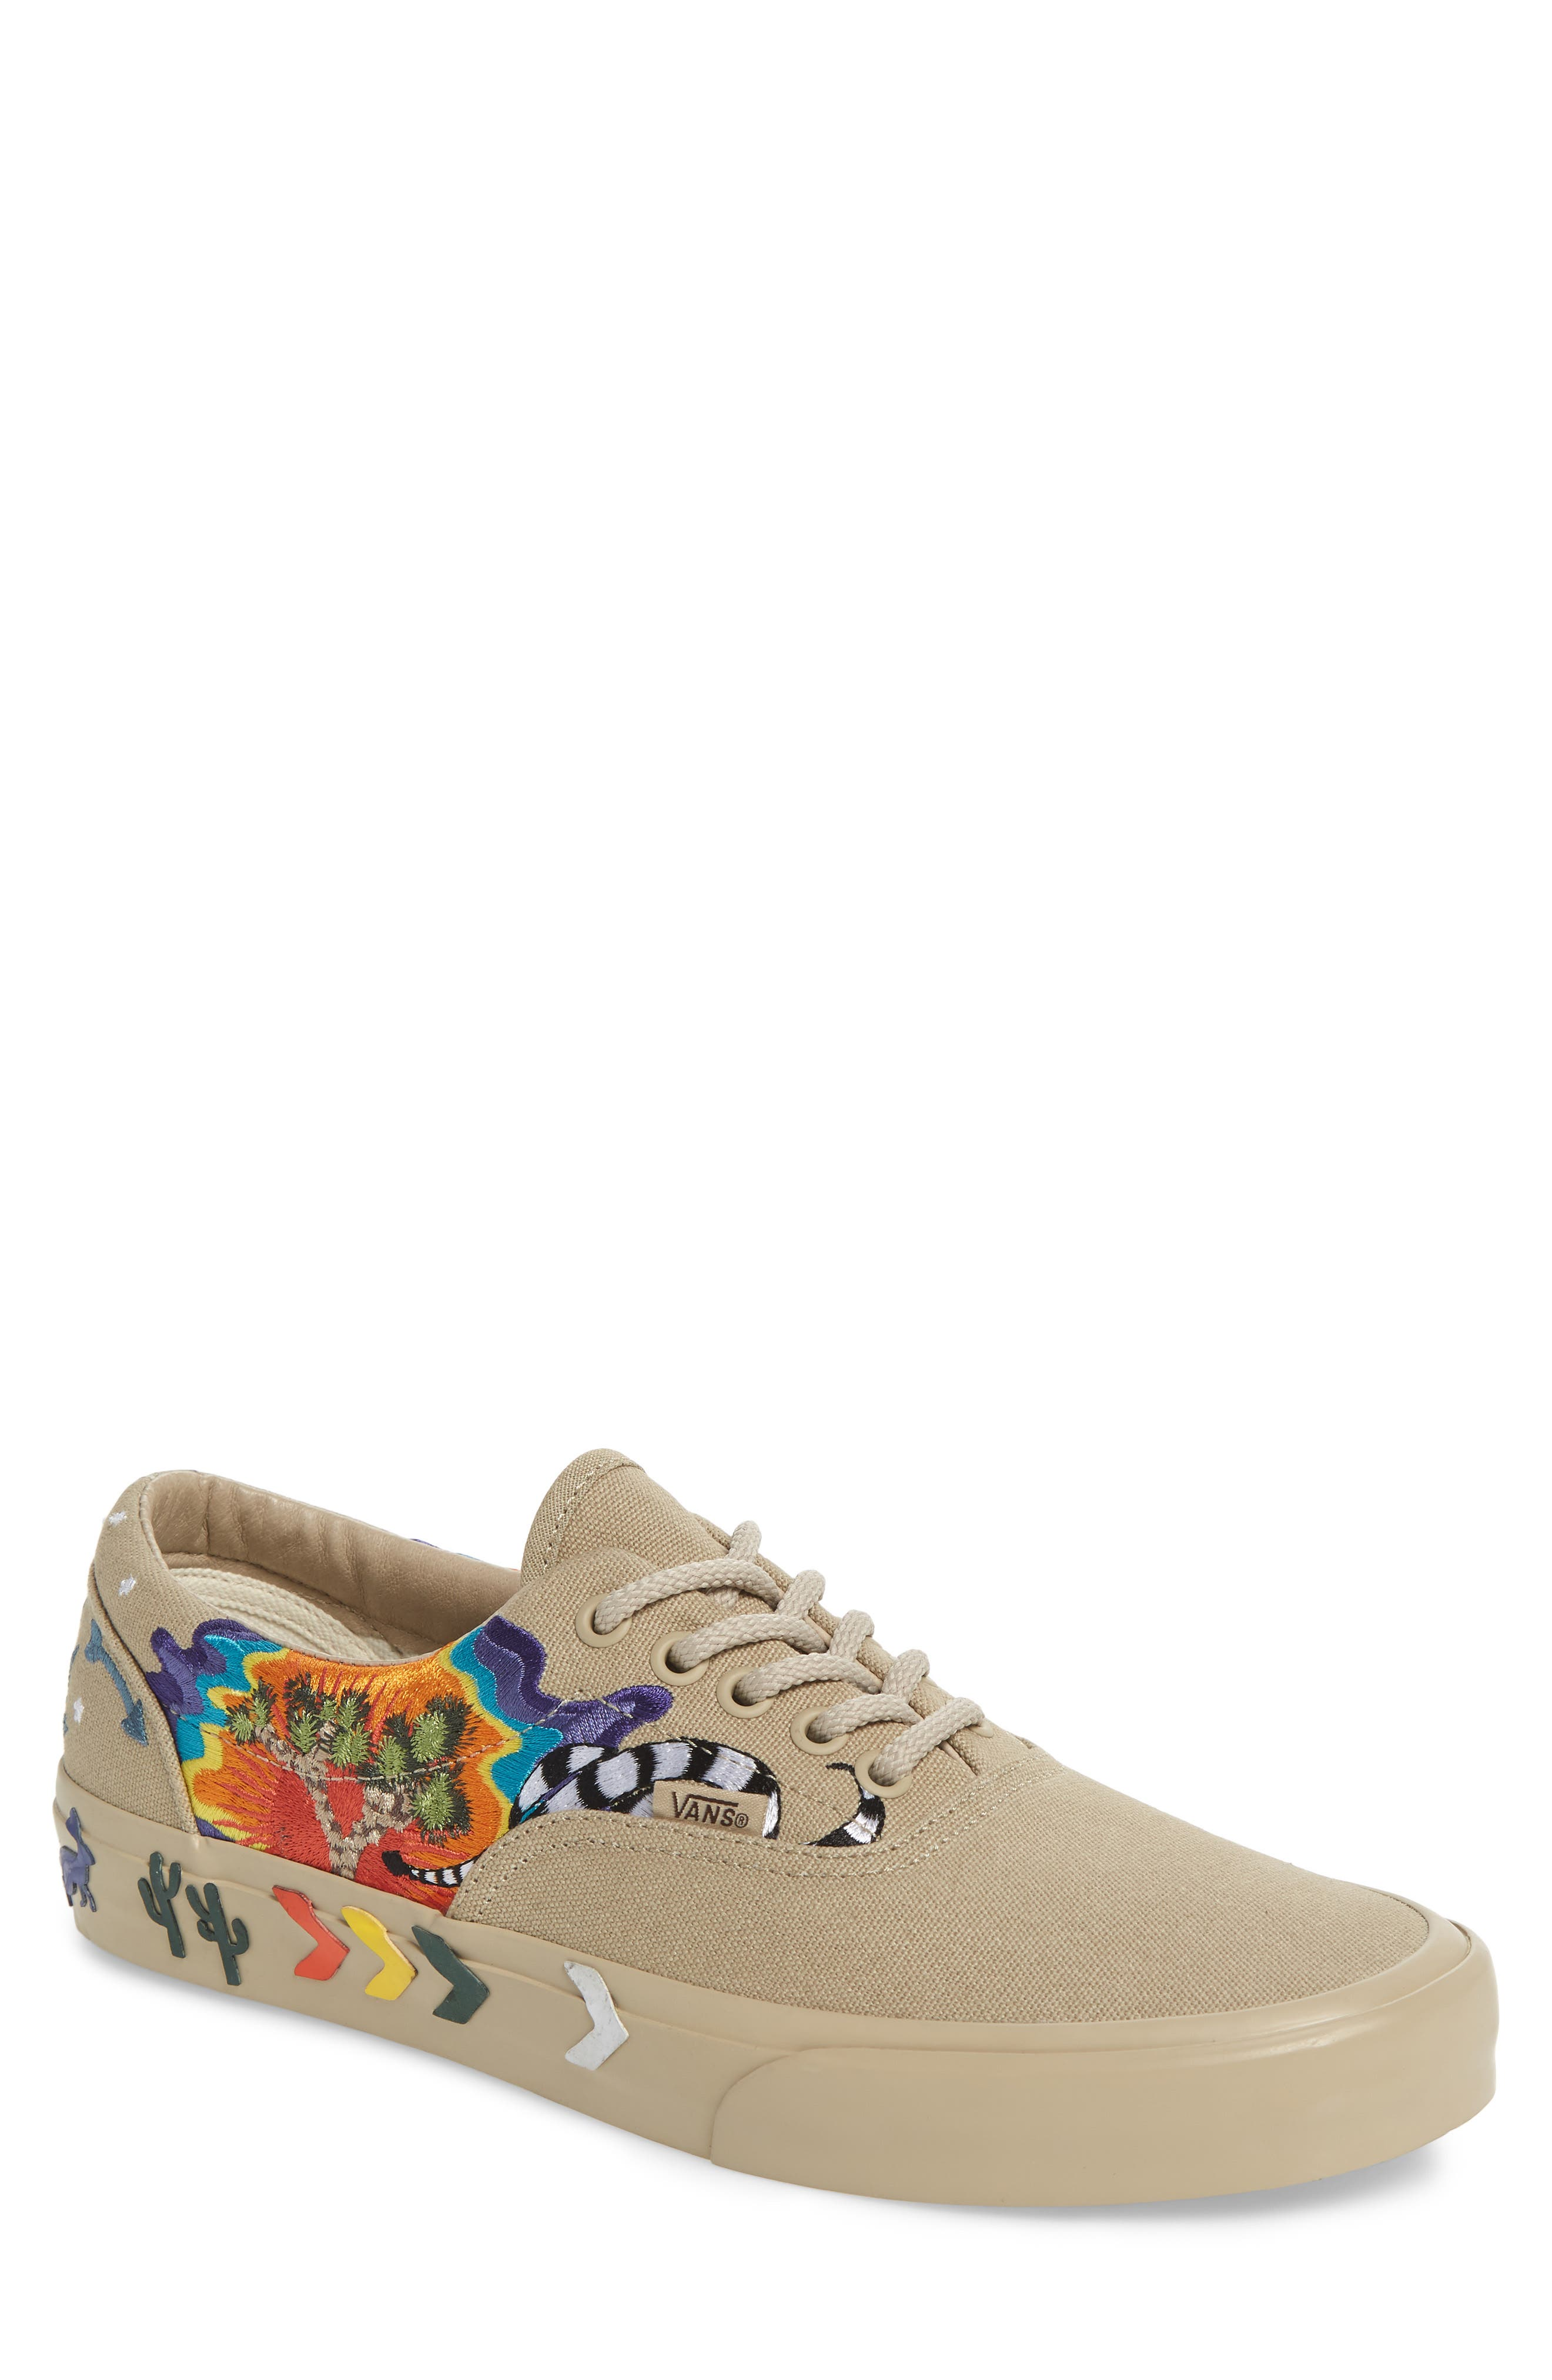 Vans Desert Embellish Era Sneaker (Men)